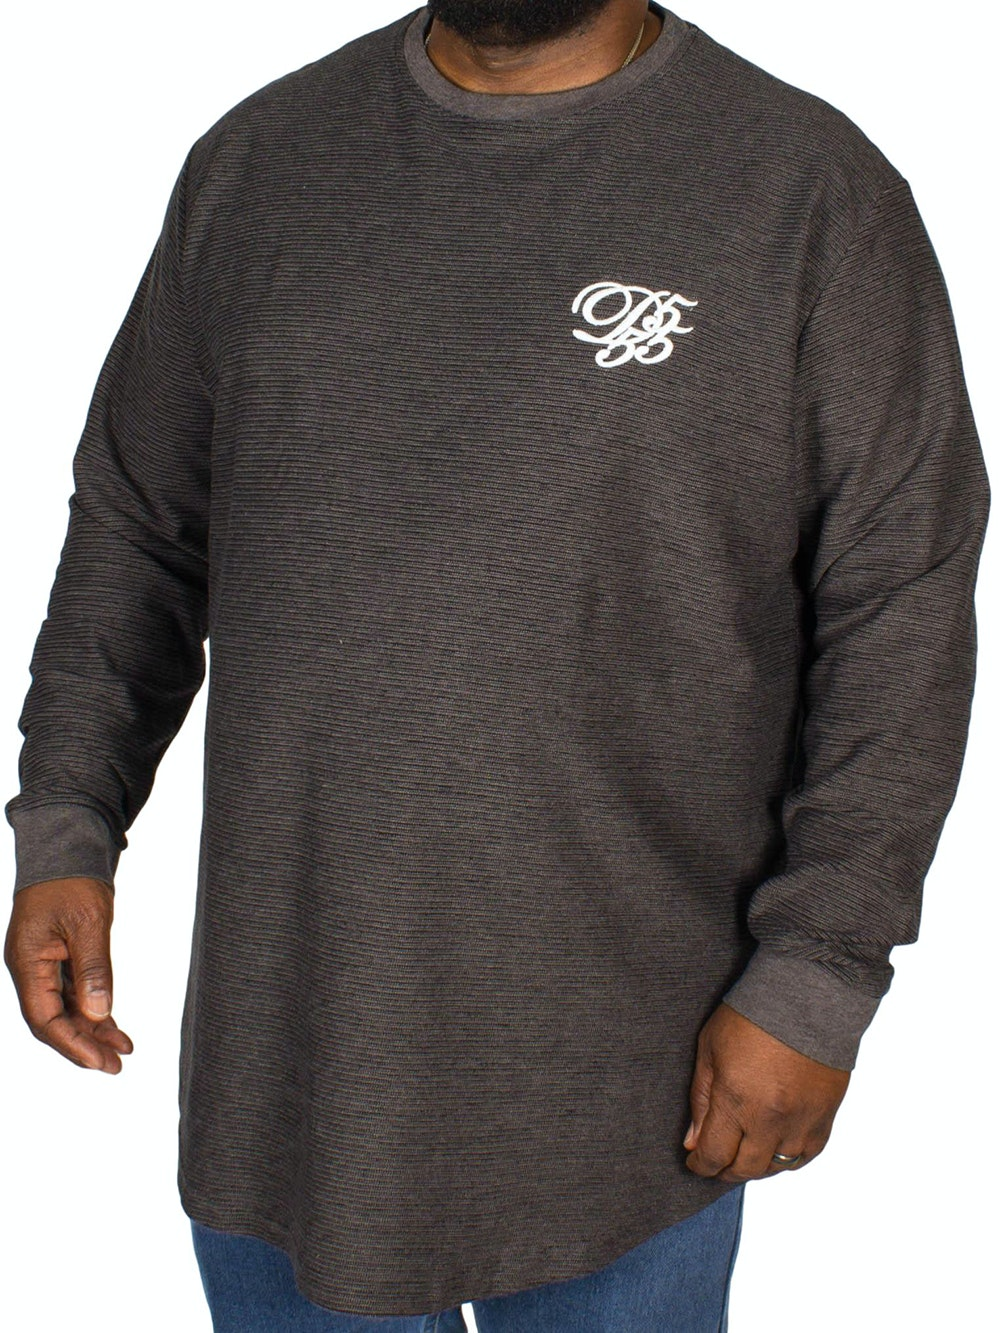 D555 Plato Long Sleeve T-Shirt Charcoal